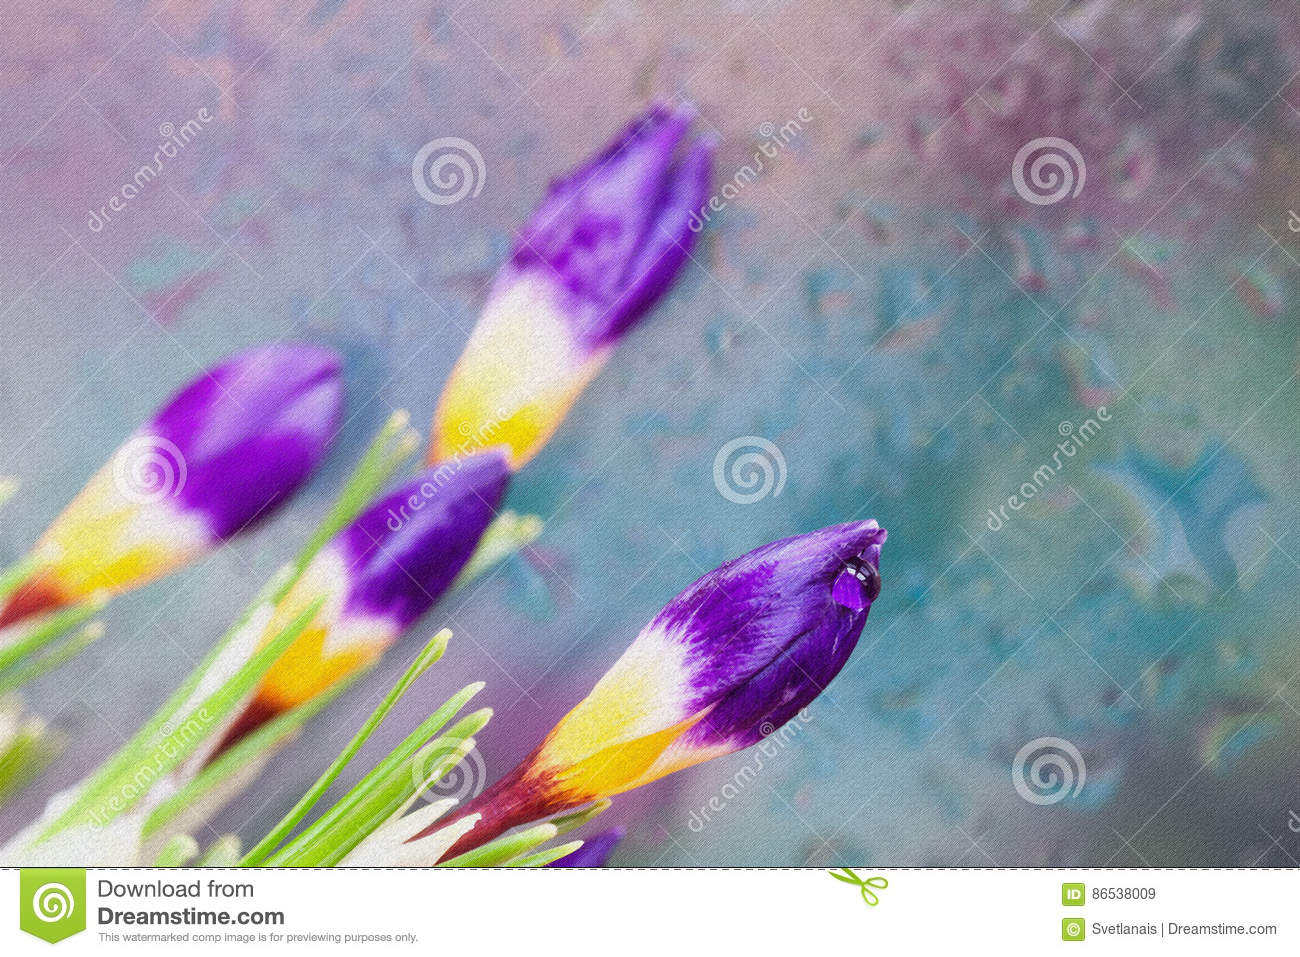 Fine fresh Crocus behind glass with rain drops. Bouquet for loved ones all occasions. Flower nature bright background